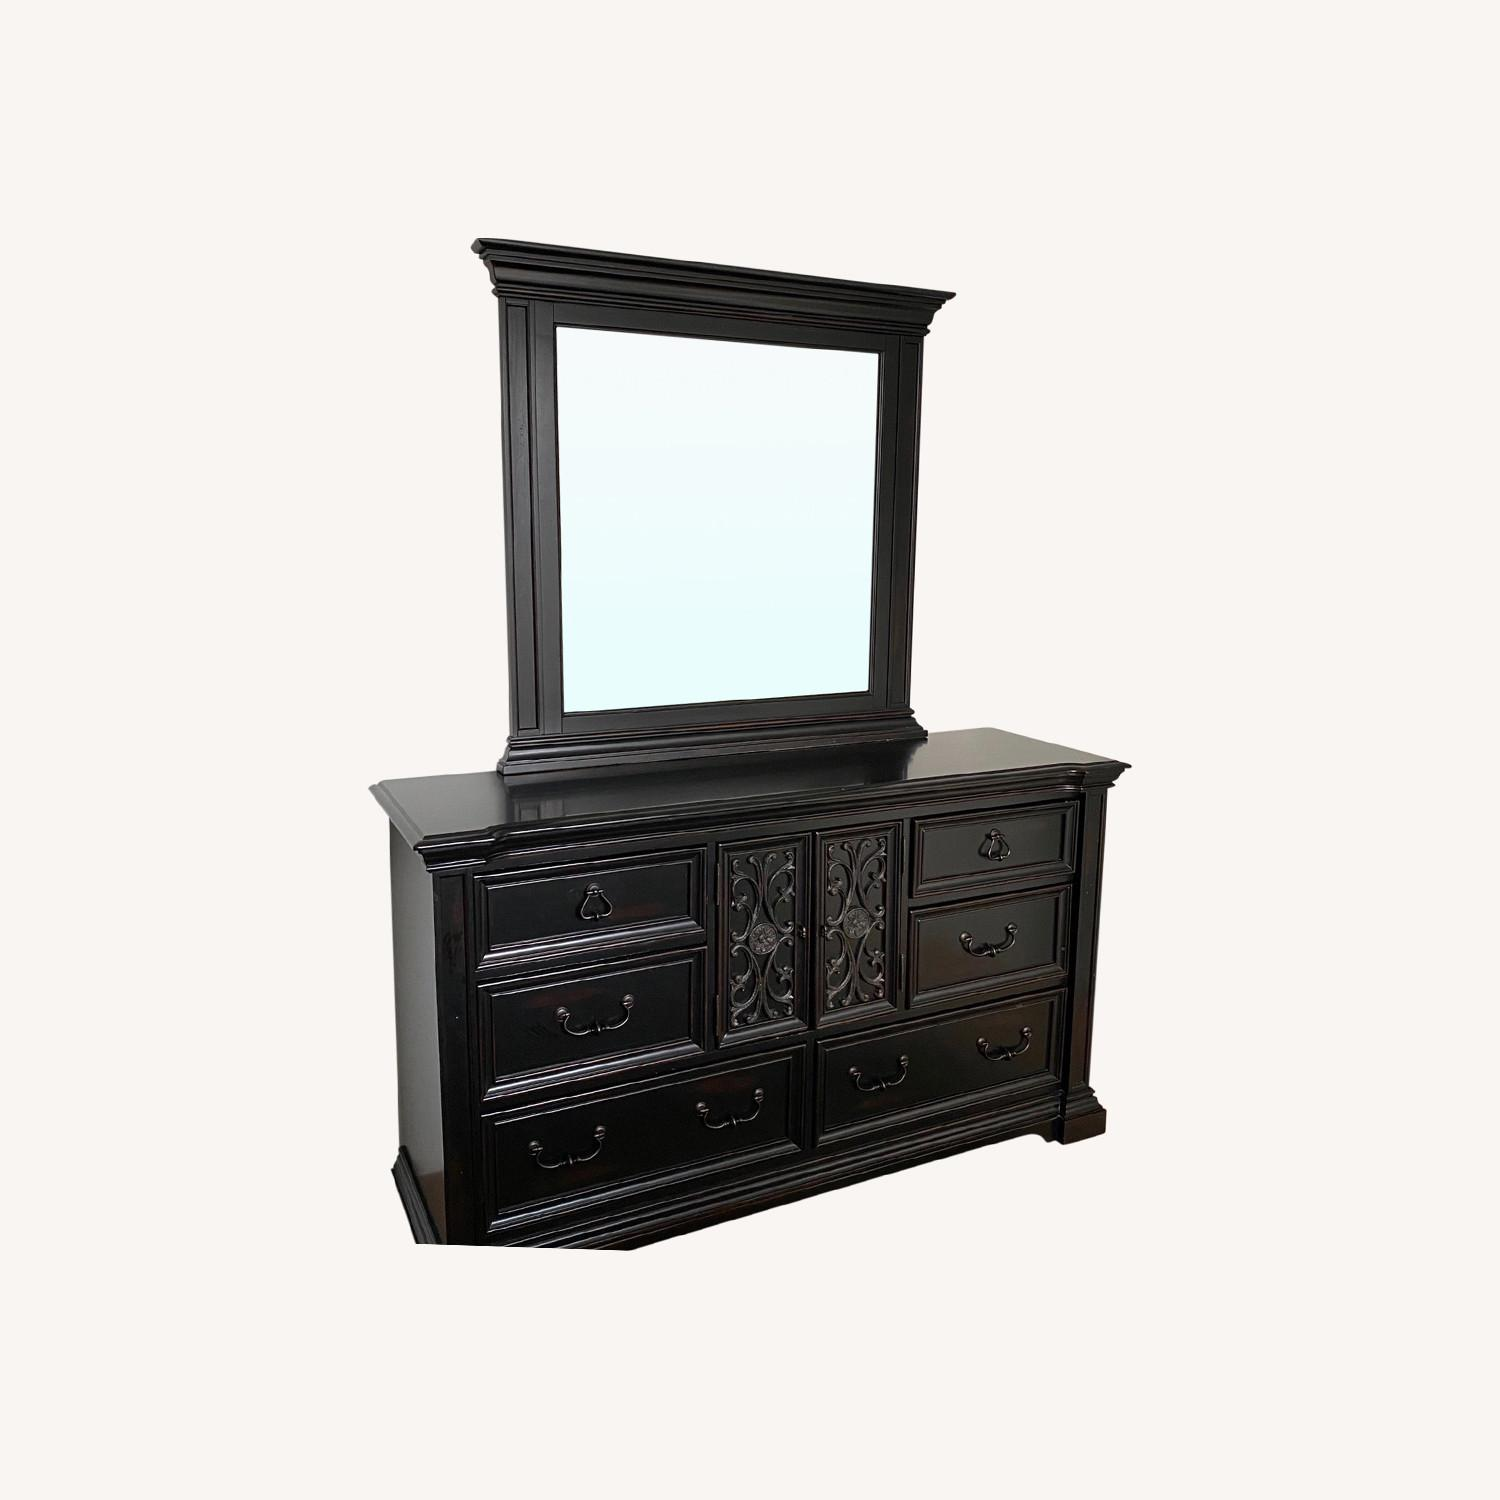 Macy's Solid Wood Dresser with Mirror - image-0